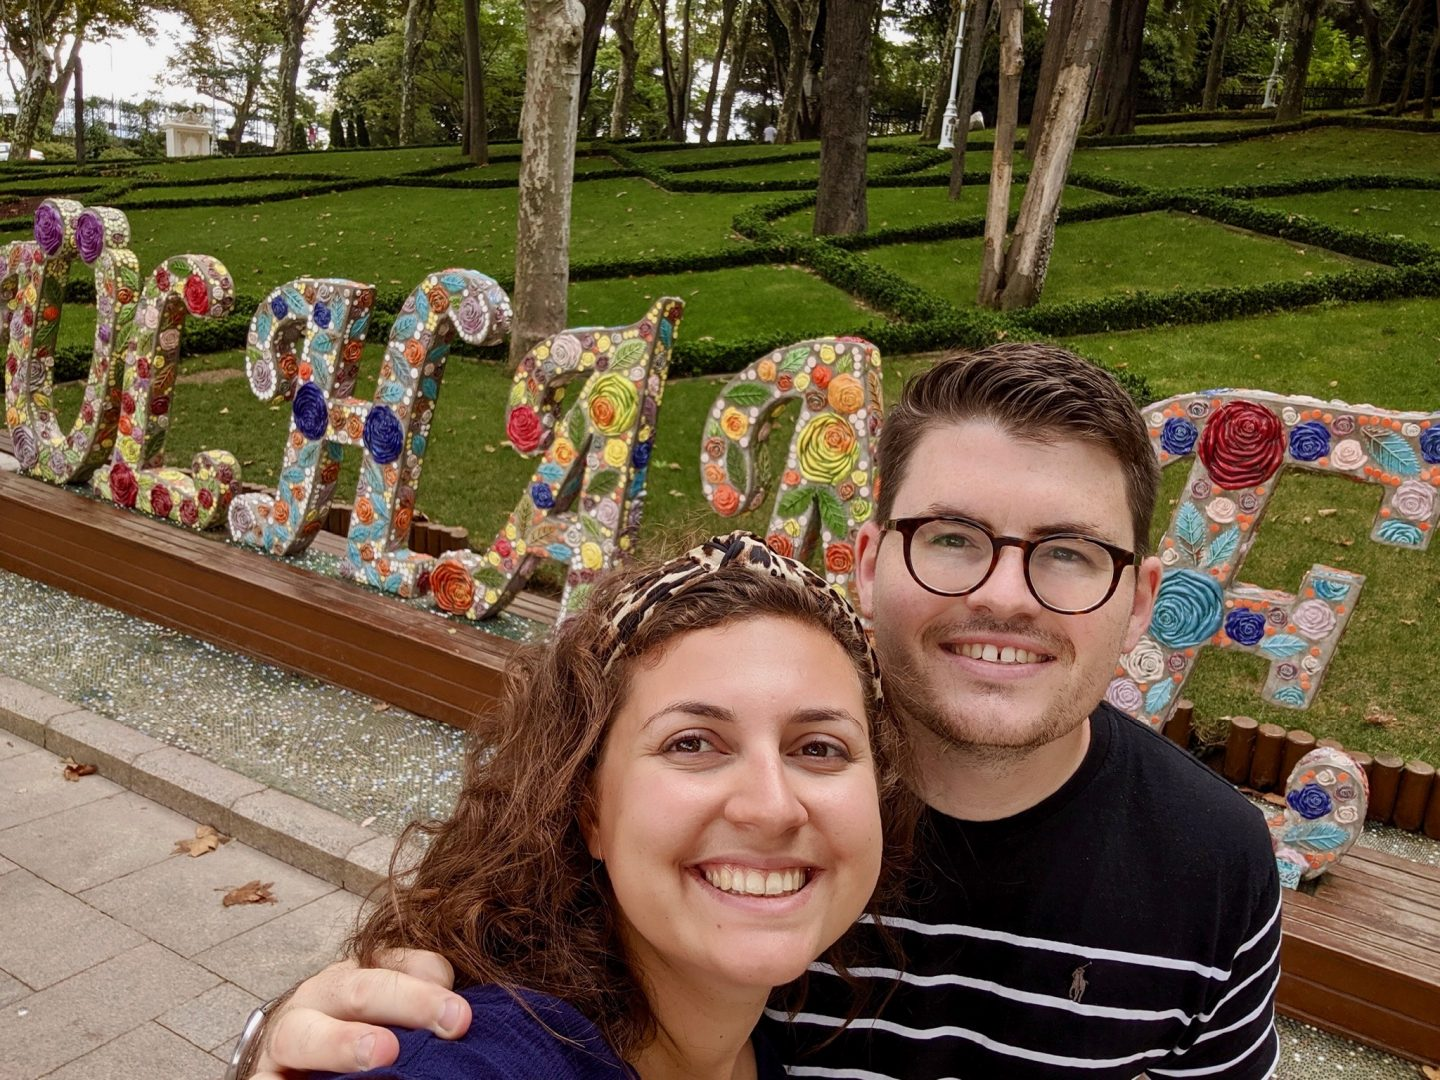 48 hours weekend in Istanbul: A selfie of a couple in Gülhane Park with a sign of the park's name behind them.